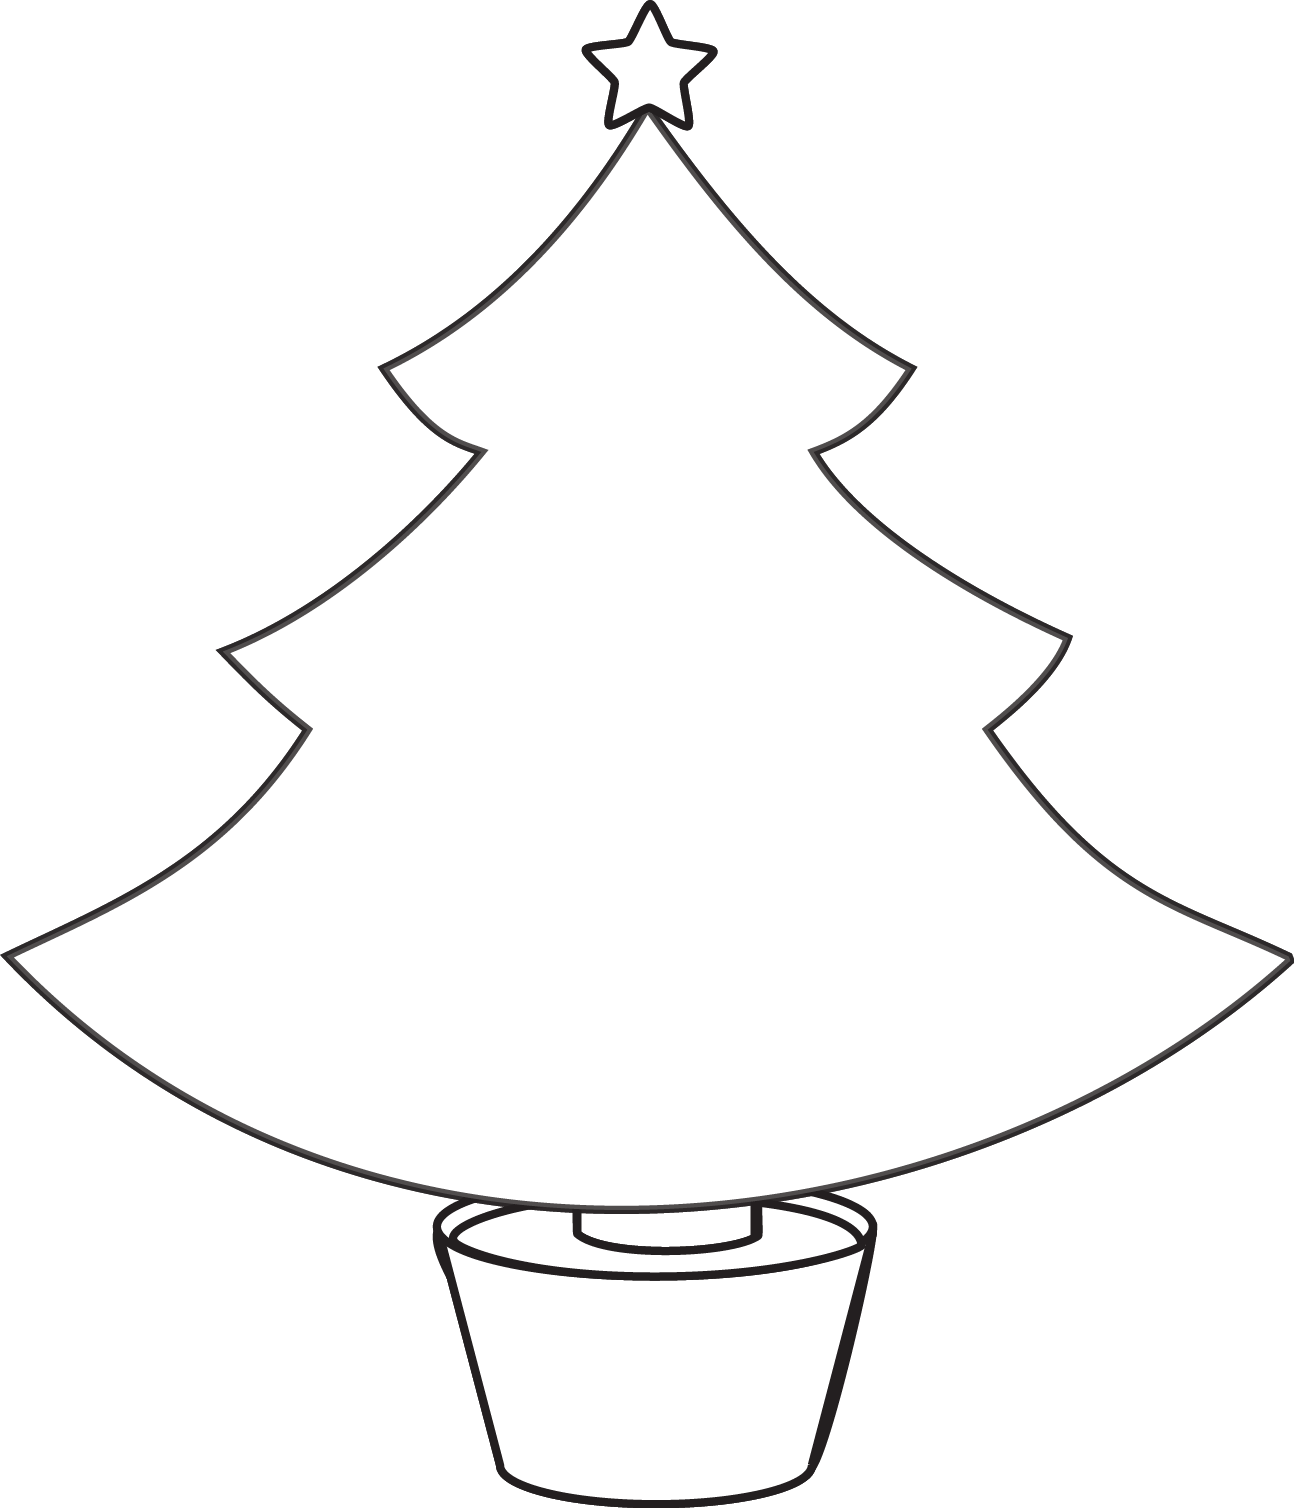 1294x1508 Christmas Tree Outline On Black Clipart